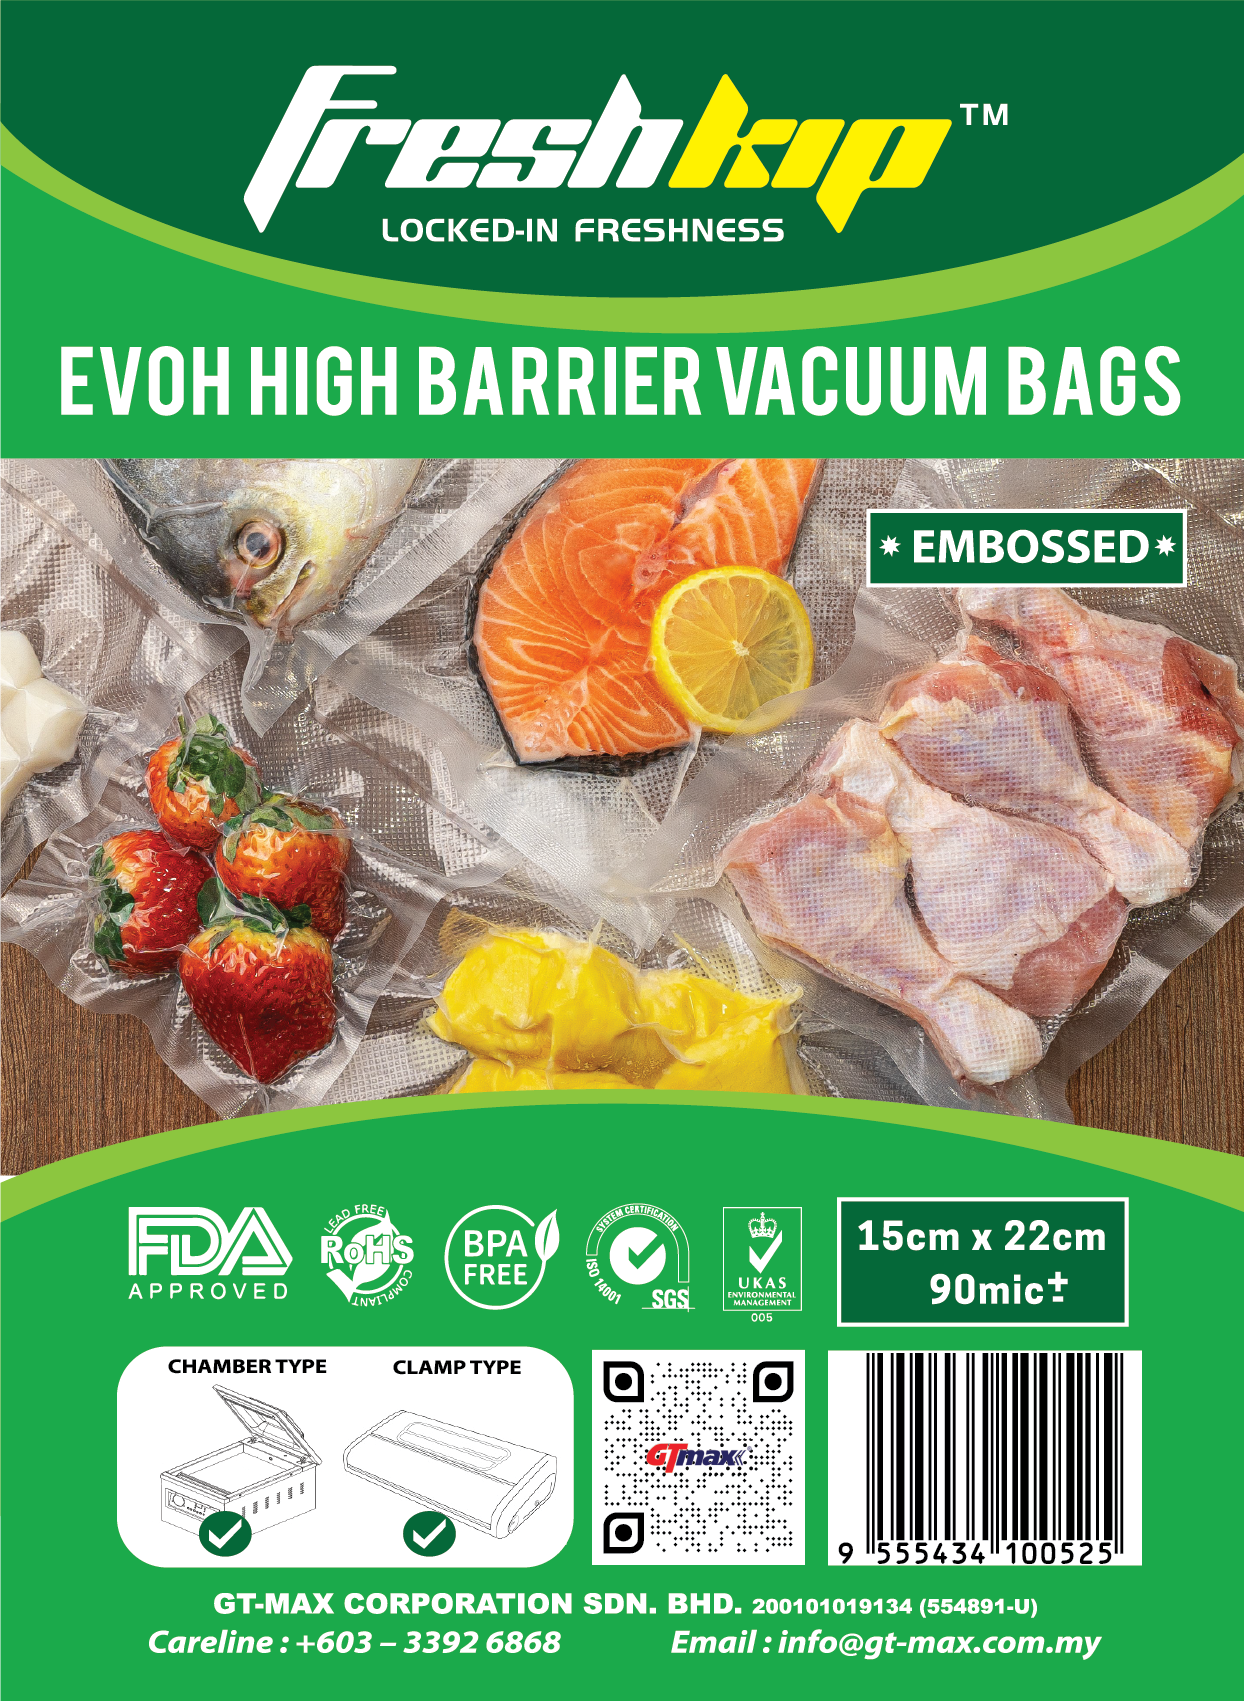 EVOH High Barrier Vacuum Bags (Freshkip™)